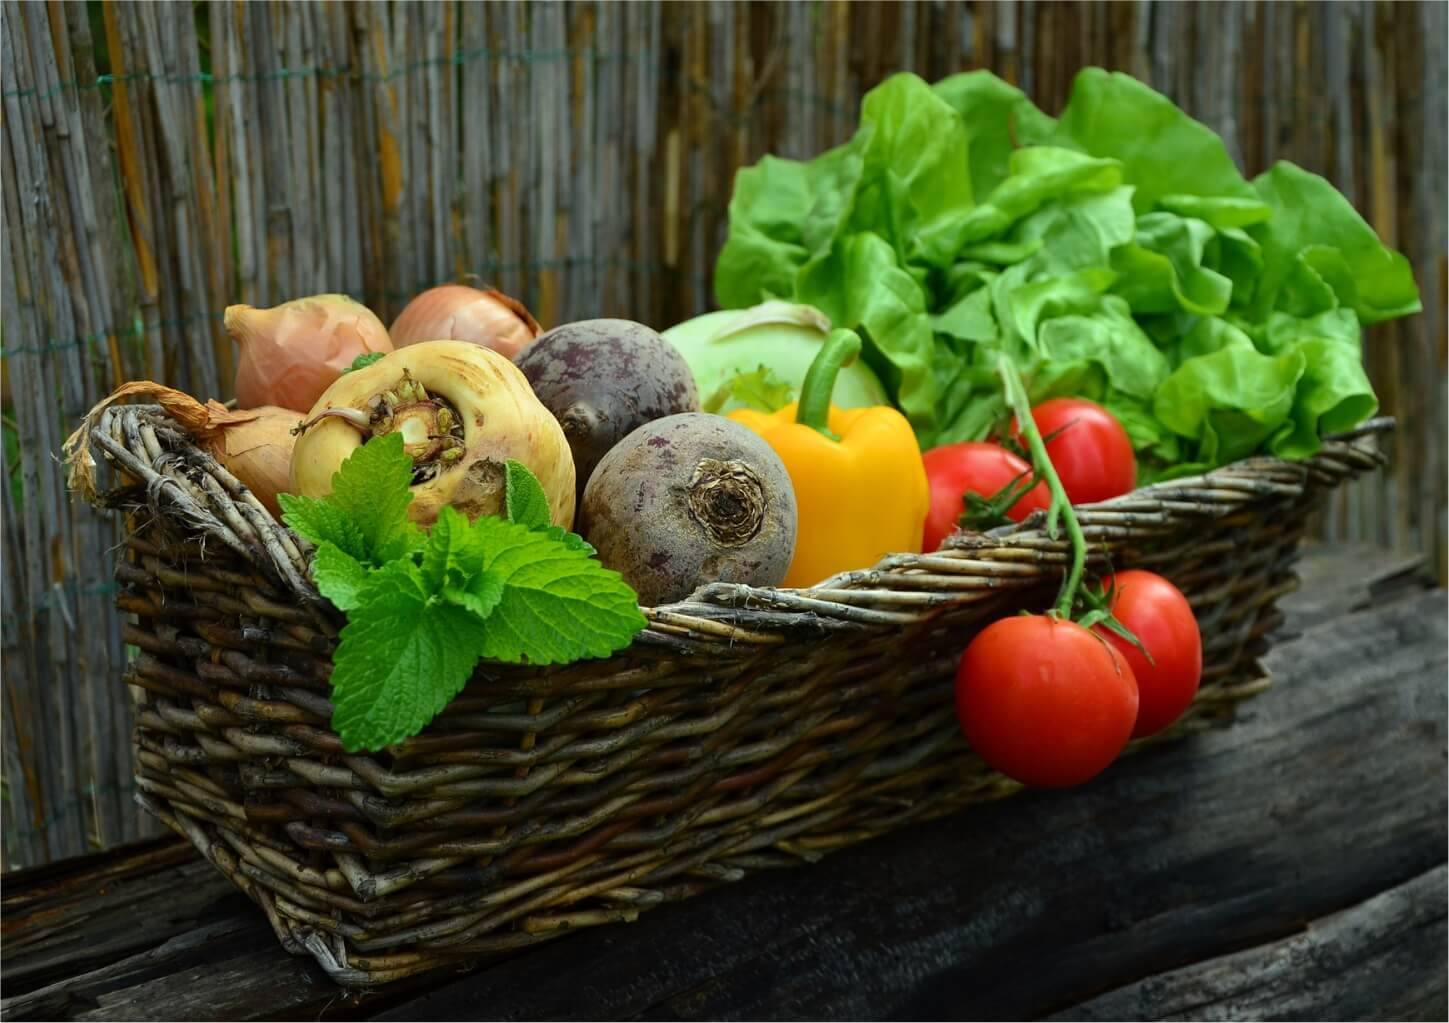 Organic Food Market 2020 Global Industry – Key Players Analysis, Sales, Supply, Demand and Forecast to 2026